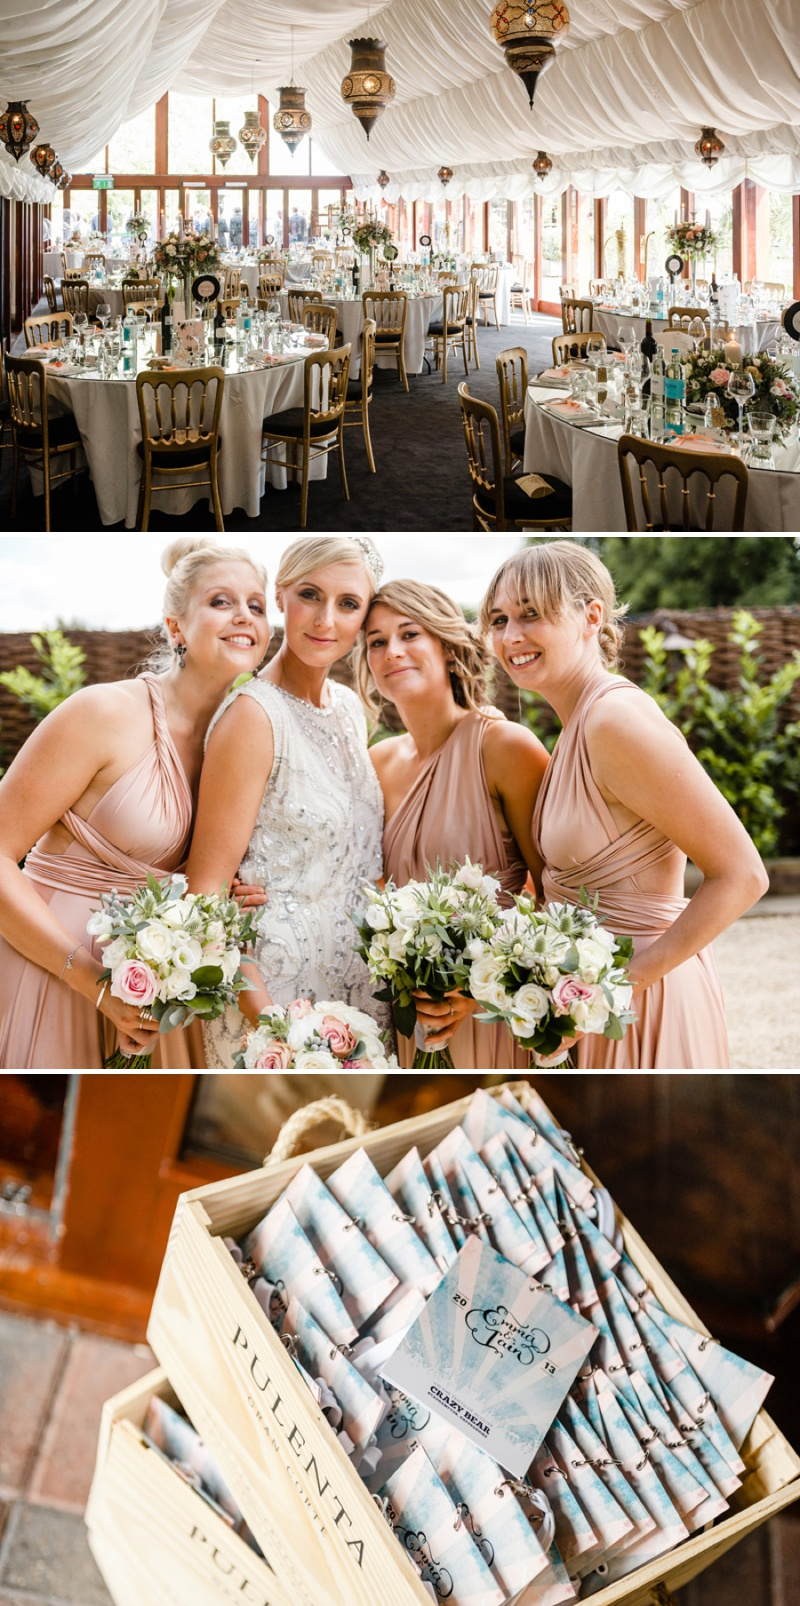 A Beautiful Music Inspired Wedding At The Crazy Bear In Stadhampton With A Jenny Packham Esme Wedding Dress and A Pink And Cream Avalanche Rose Bouquet._0011